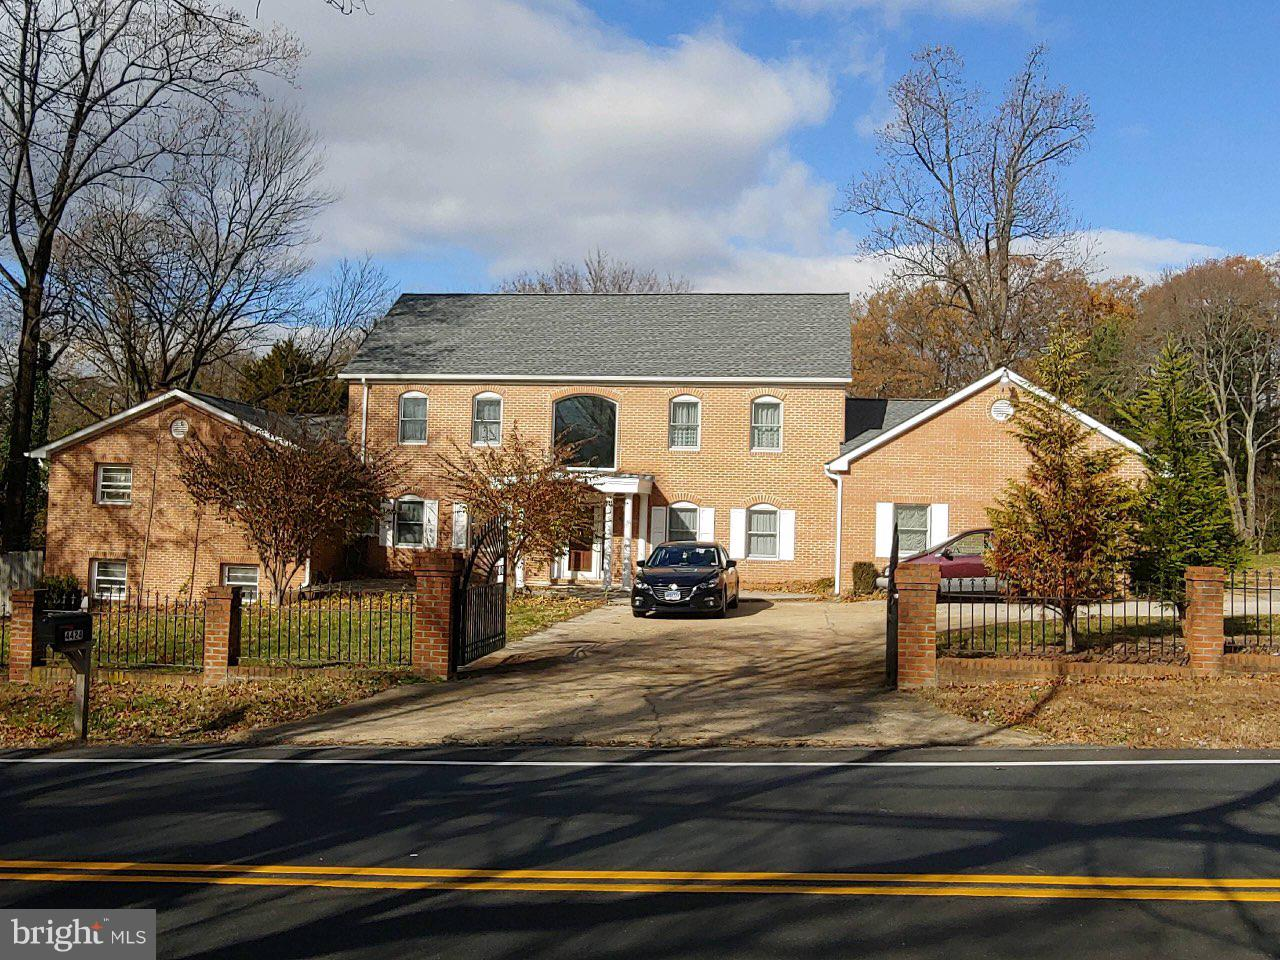 Large Brick Home on almost an Acre in Alexandria...Almost 4500 square feet on main and upper levels plus finished basement...Enclosed Porch and Deck/Gazebo on Peaceful Site...Room for multiple cars with the Large Circular Driveway and Parking Pad ..Home is currently configured for multi-family living and shown by appointment only